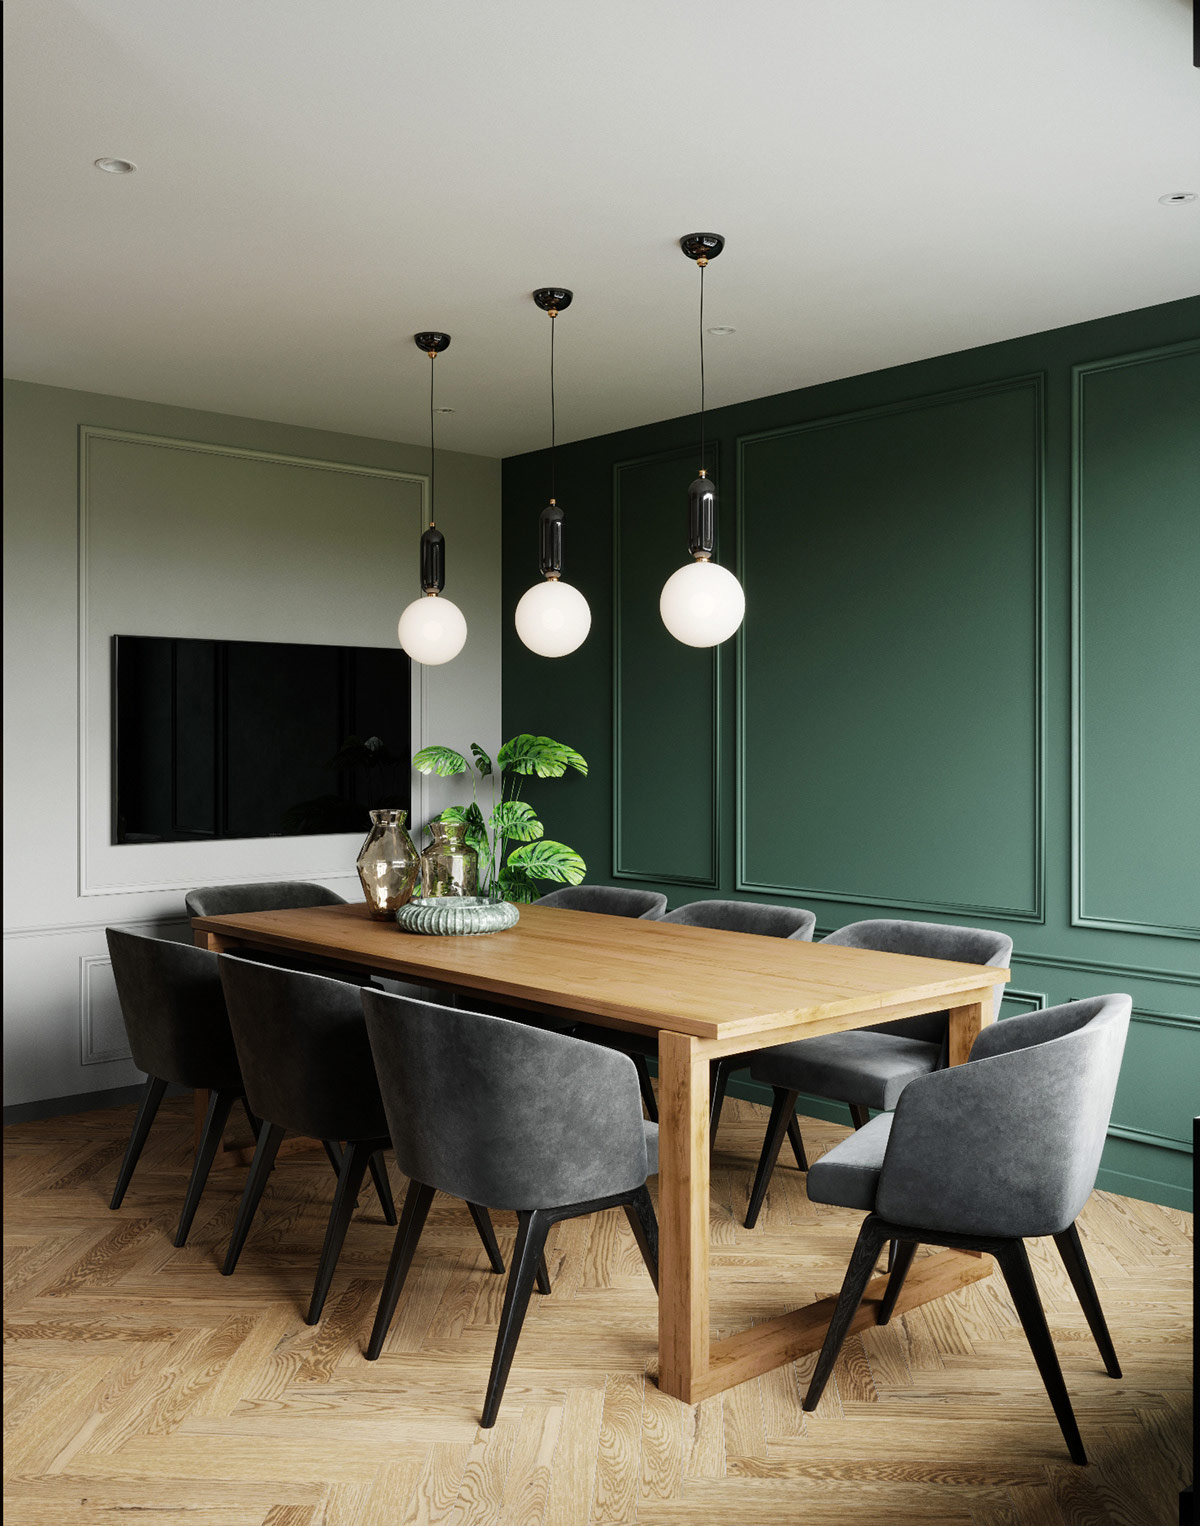 emerald-green-dining-room-accent-wall-with-classic-boiserie